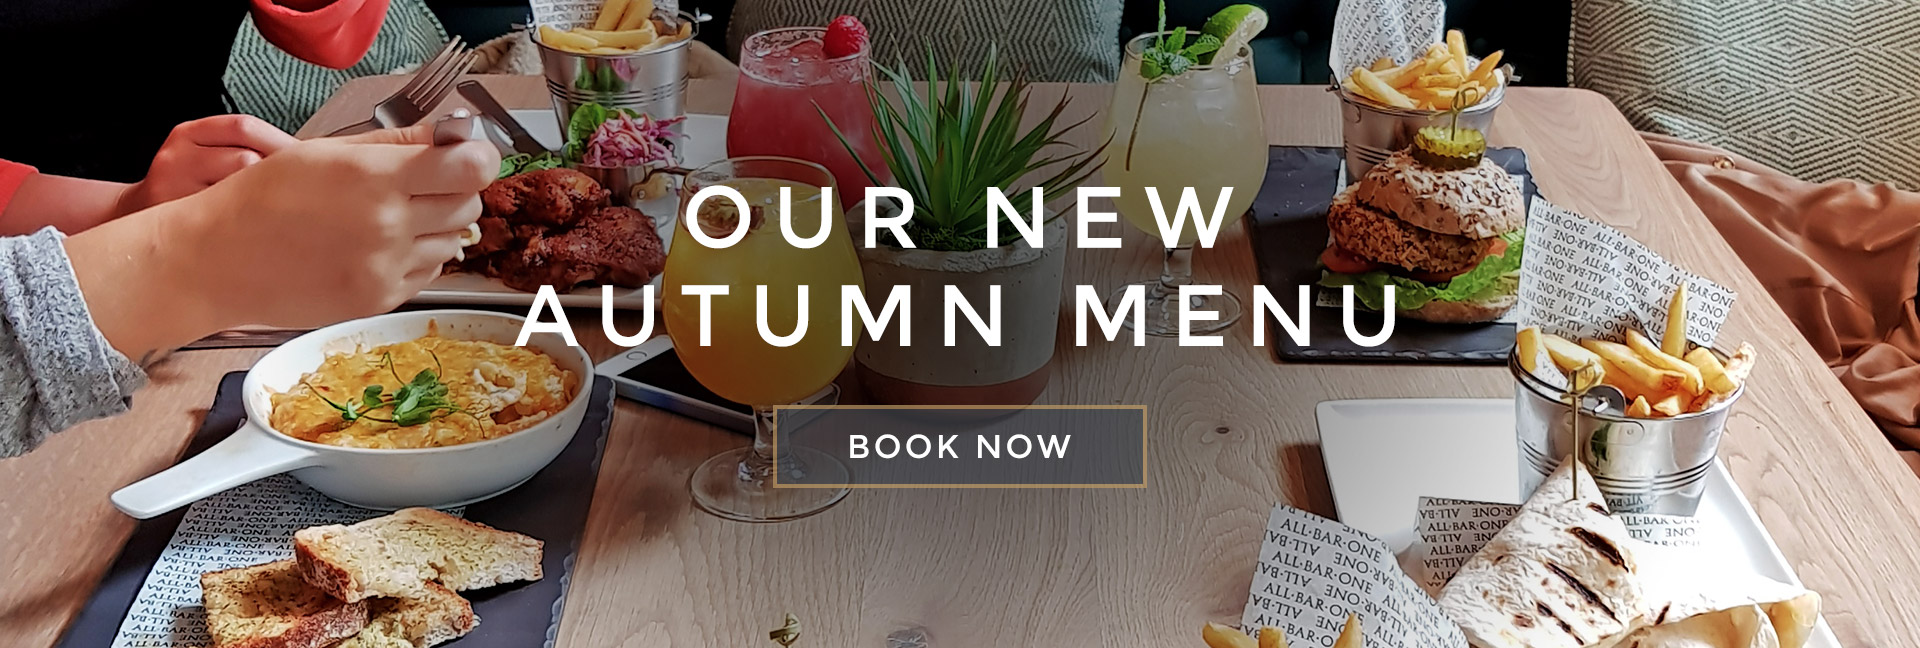 Our new Autumn menu at All Bar One Cheltenham - Book now